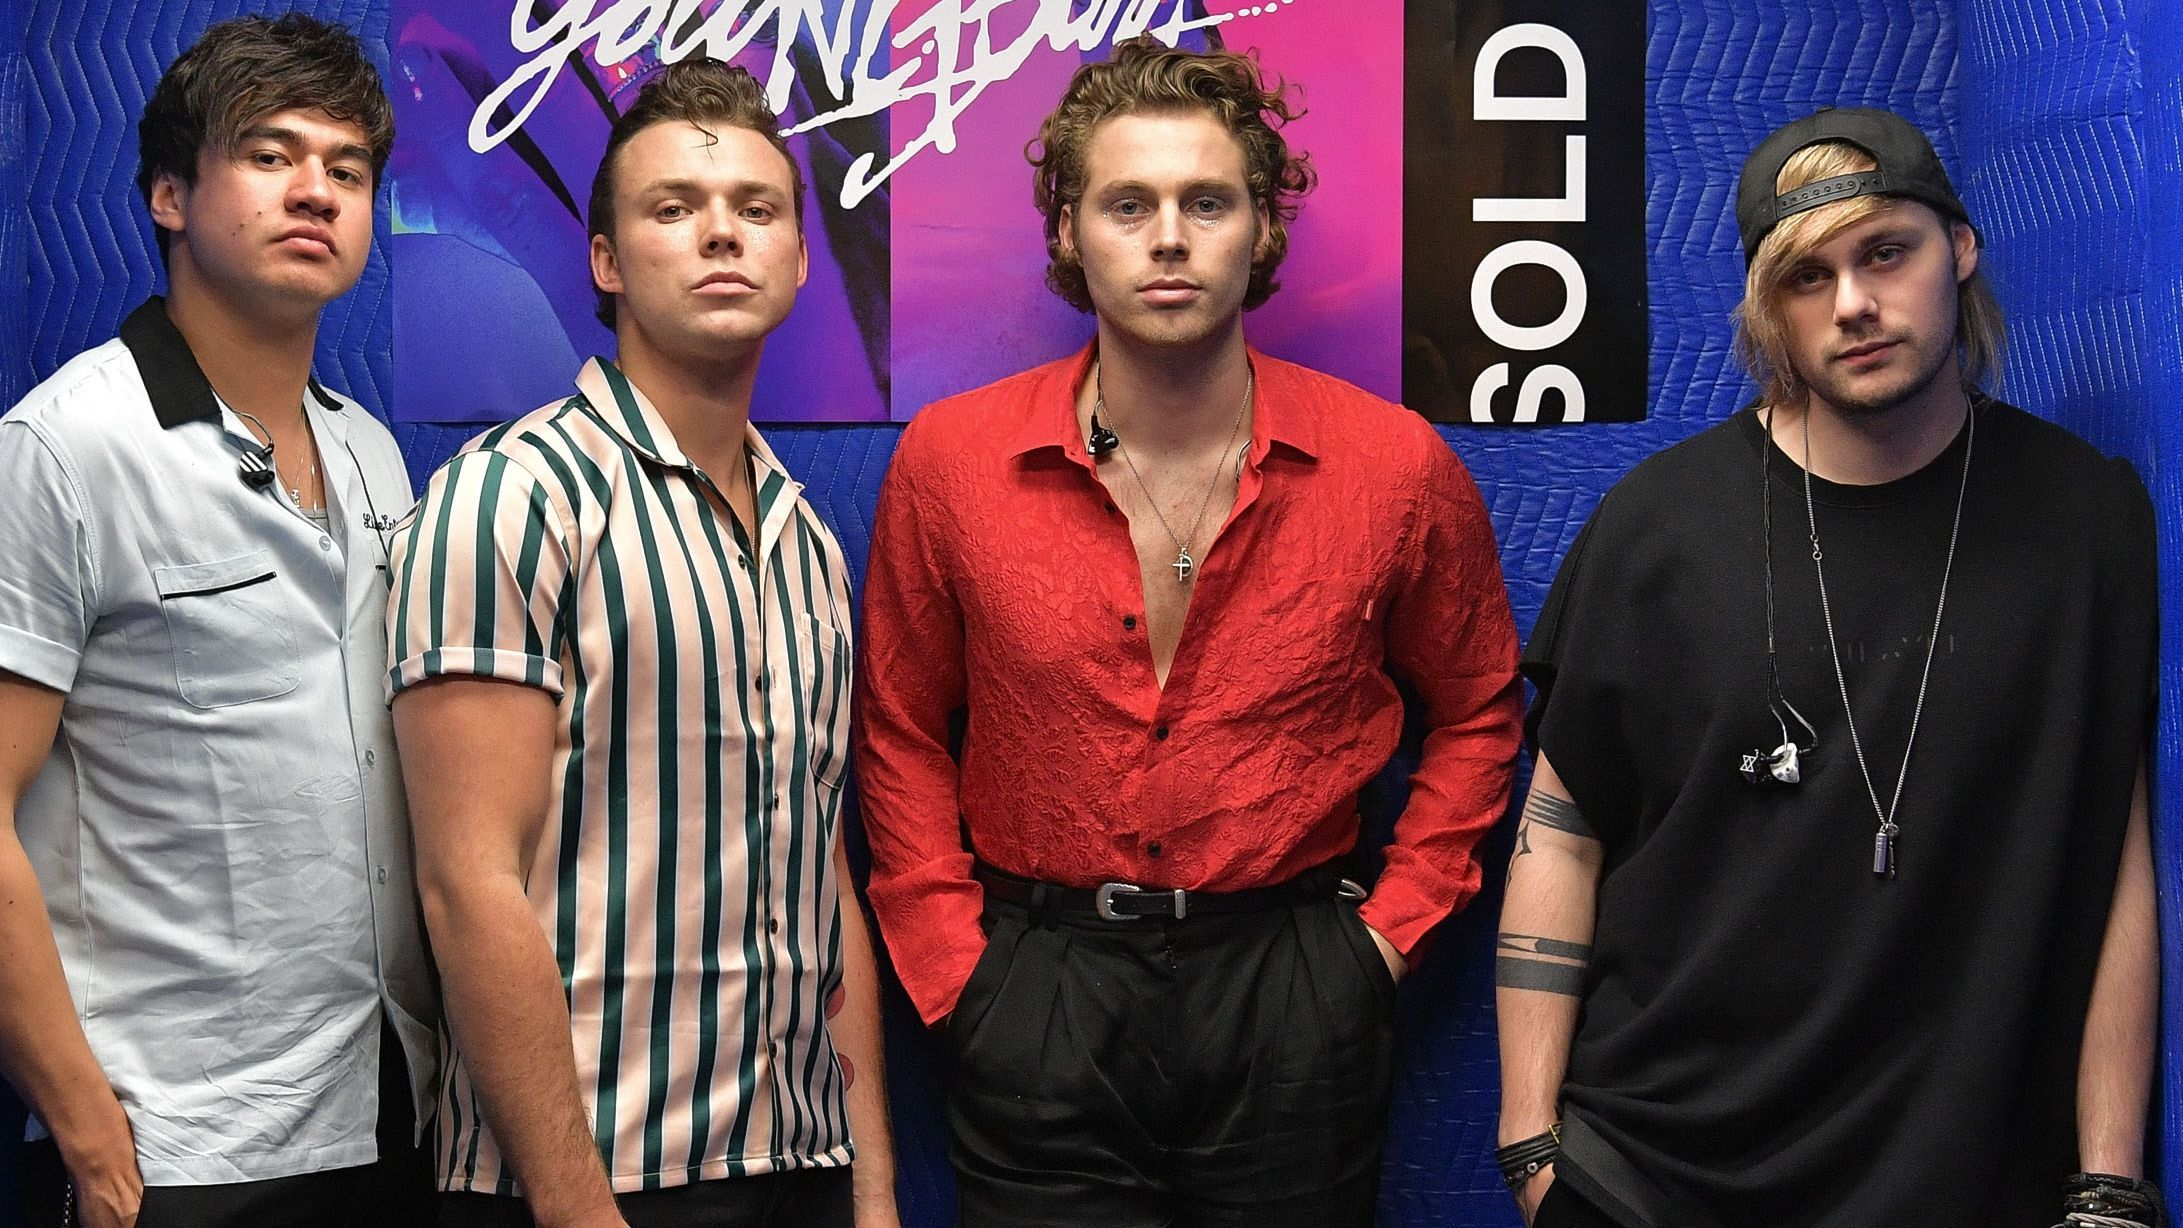 5SOS' 'Youngblood' Video Dives Into A Vibrant Japanese Subculture